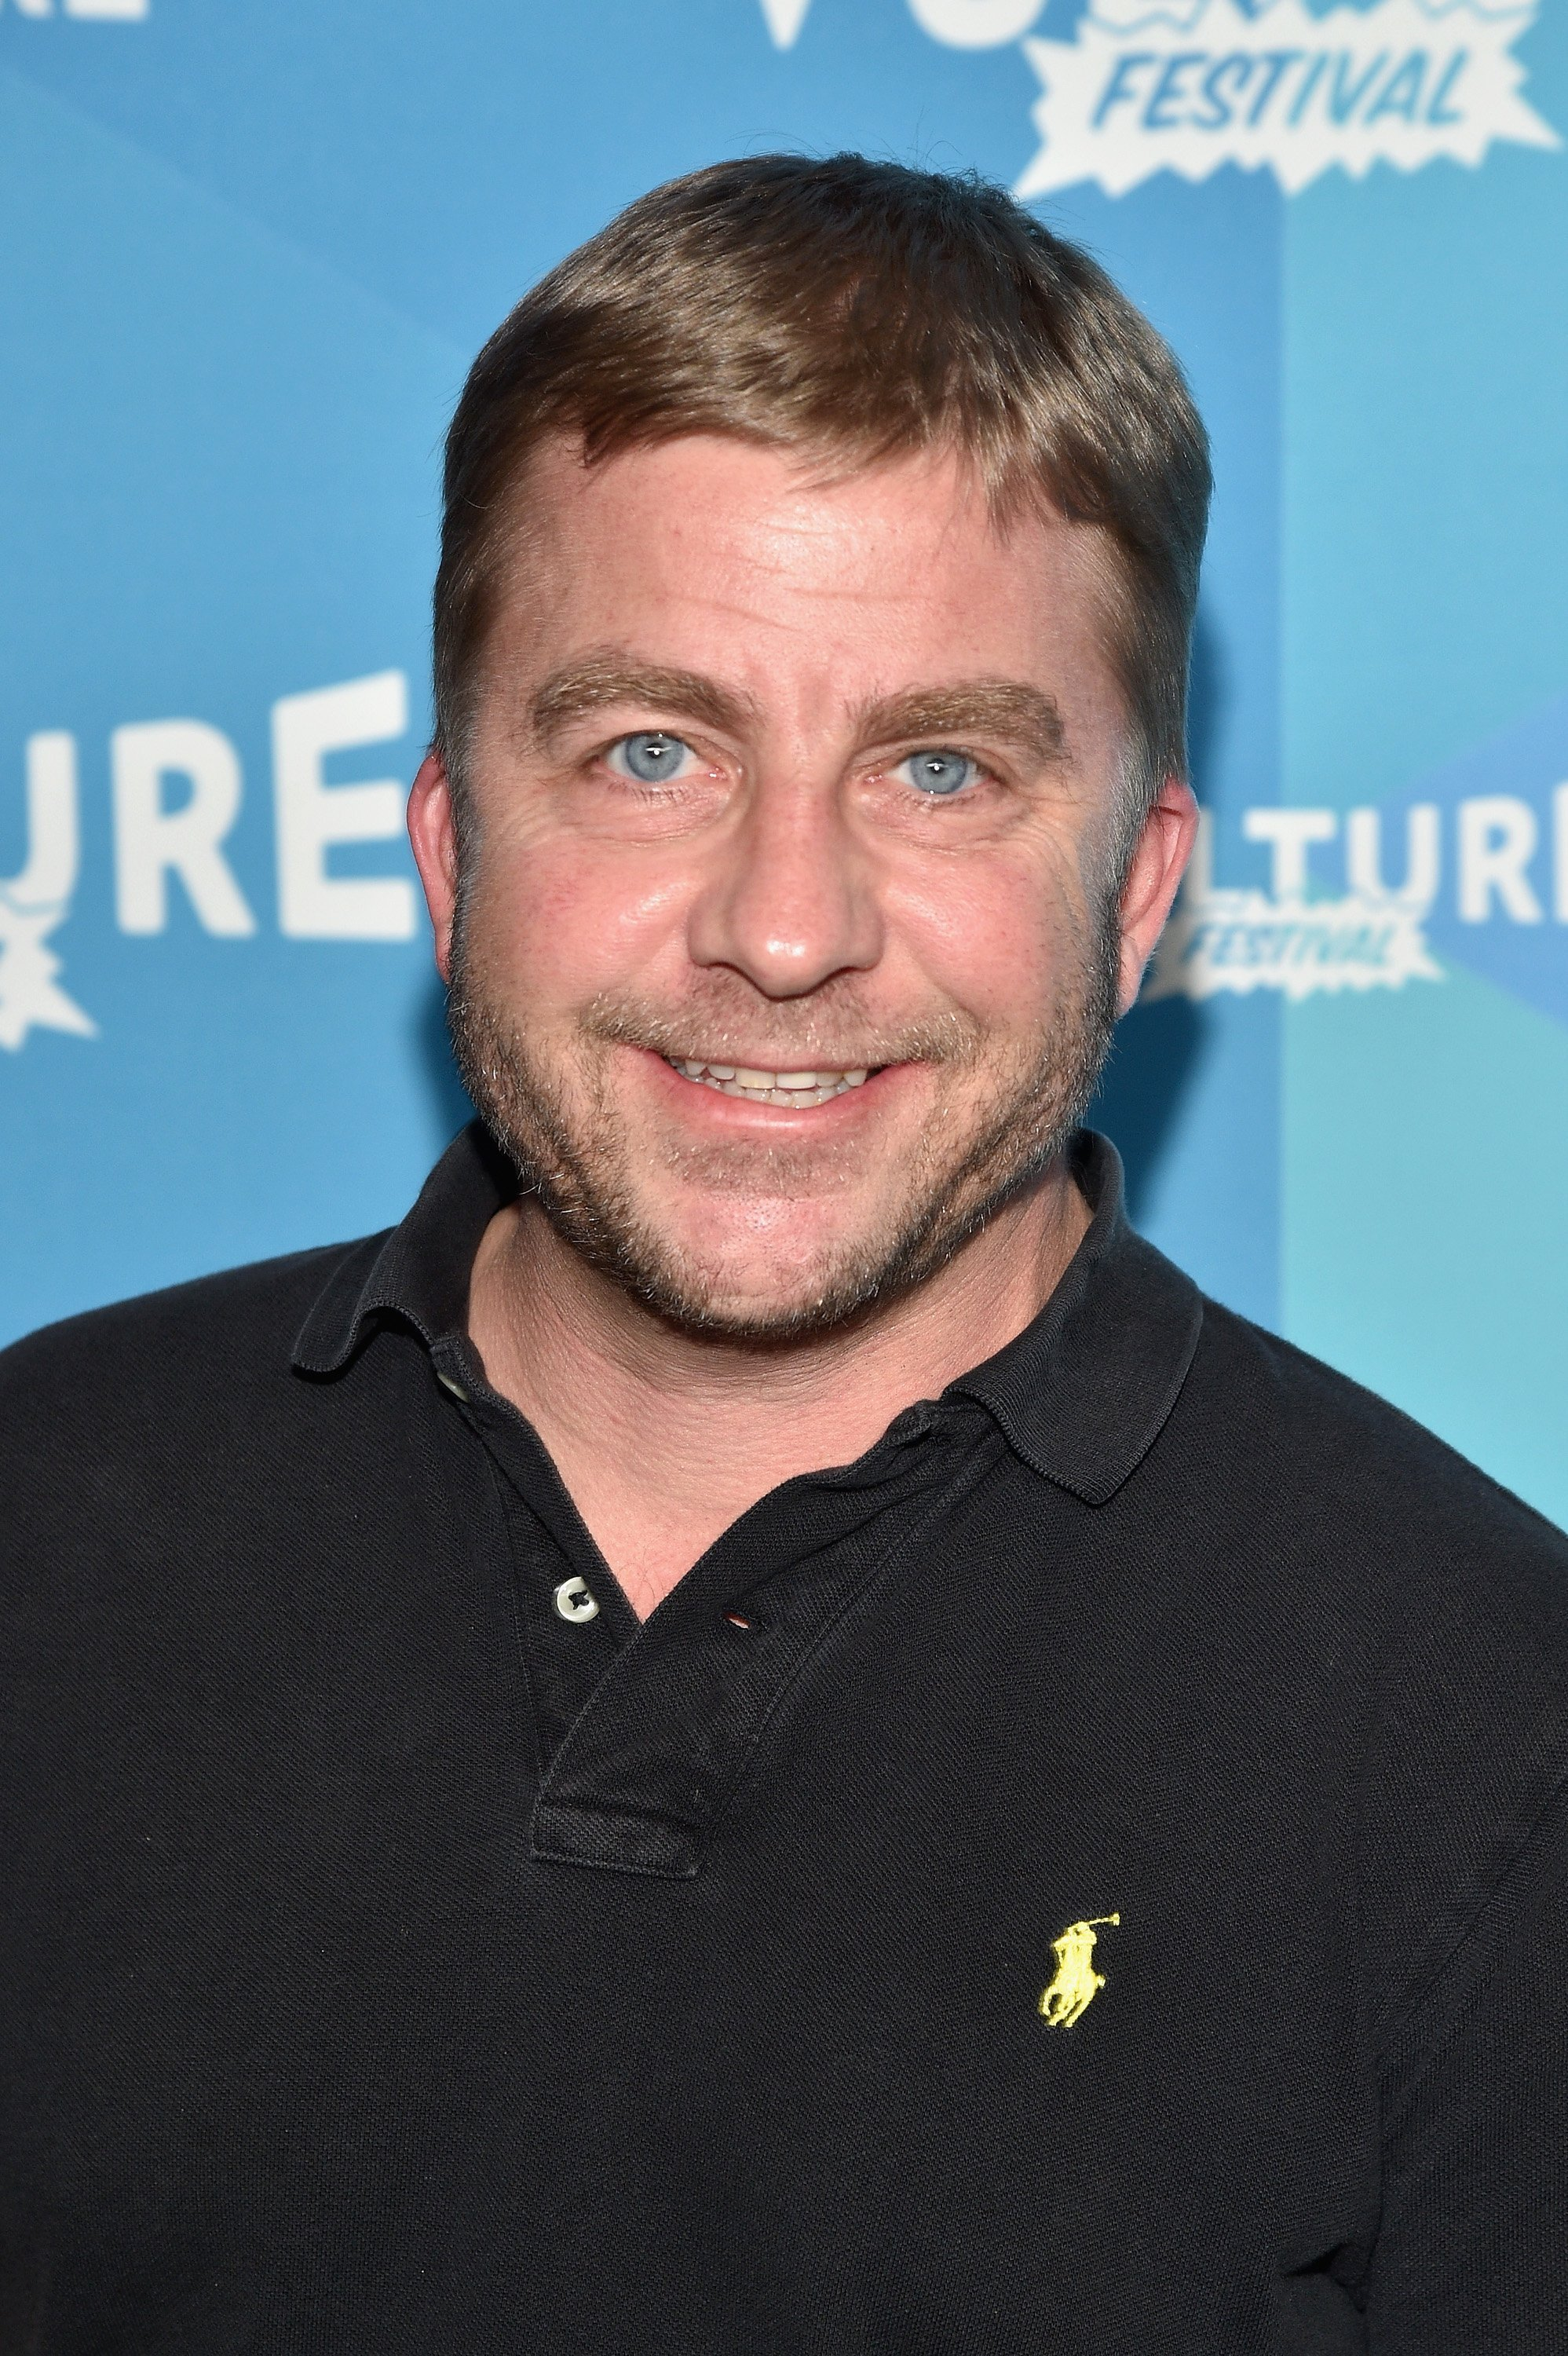 Peter Billingsley | Quelle: Getty Images